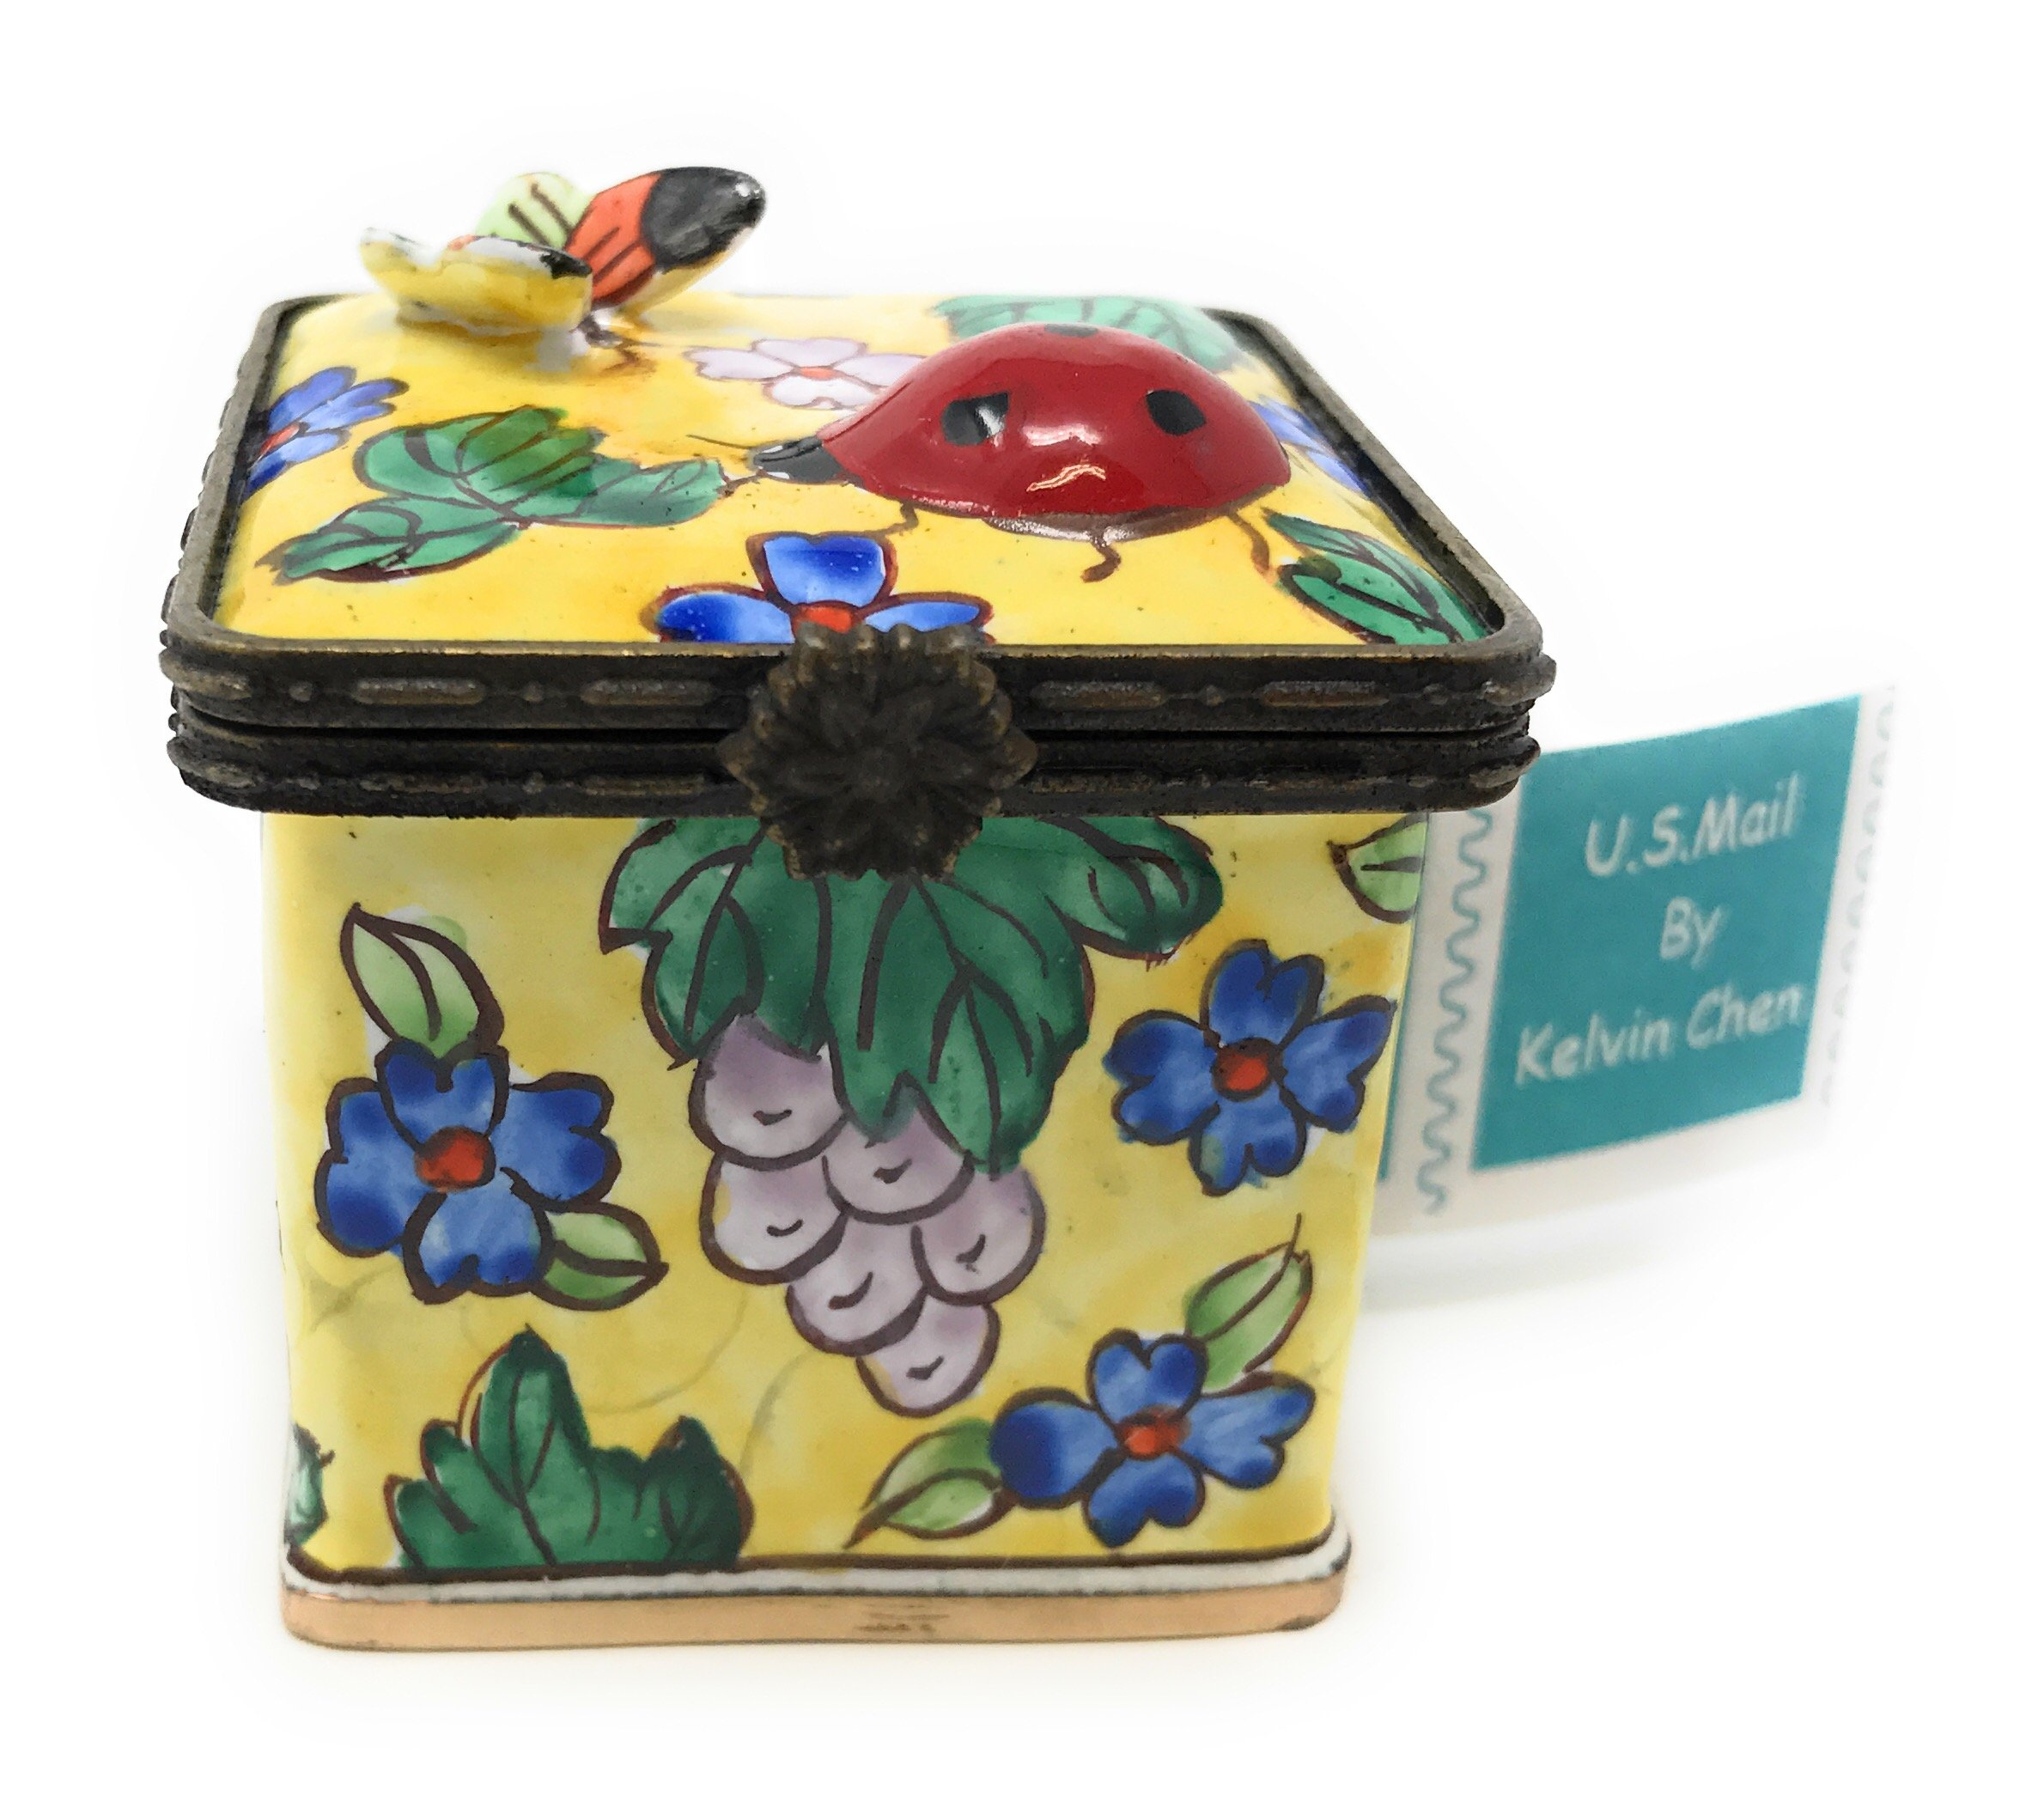 Kelvin Chen Enameled Postage Stamp Dispenser - Floral with 3-D Ladybug and Butterfly, 1.75 Inch Square